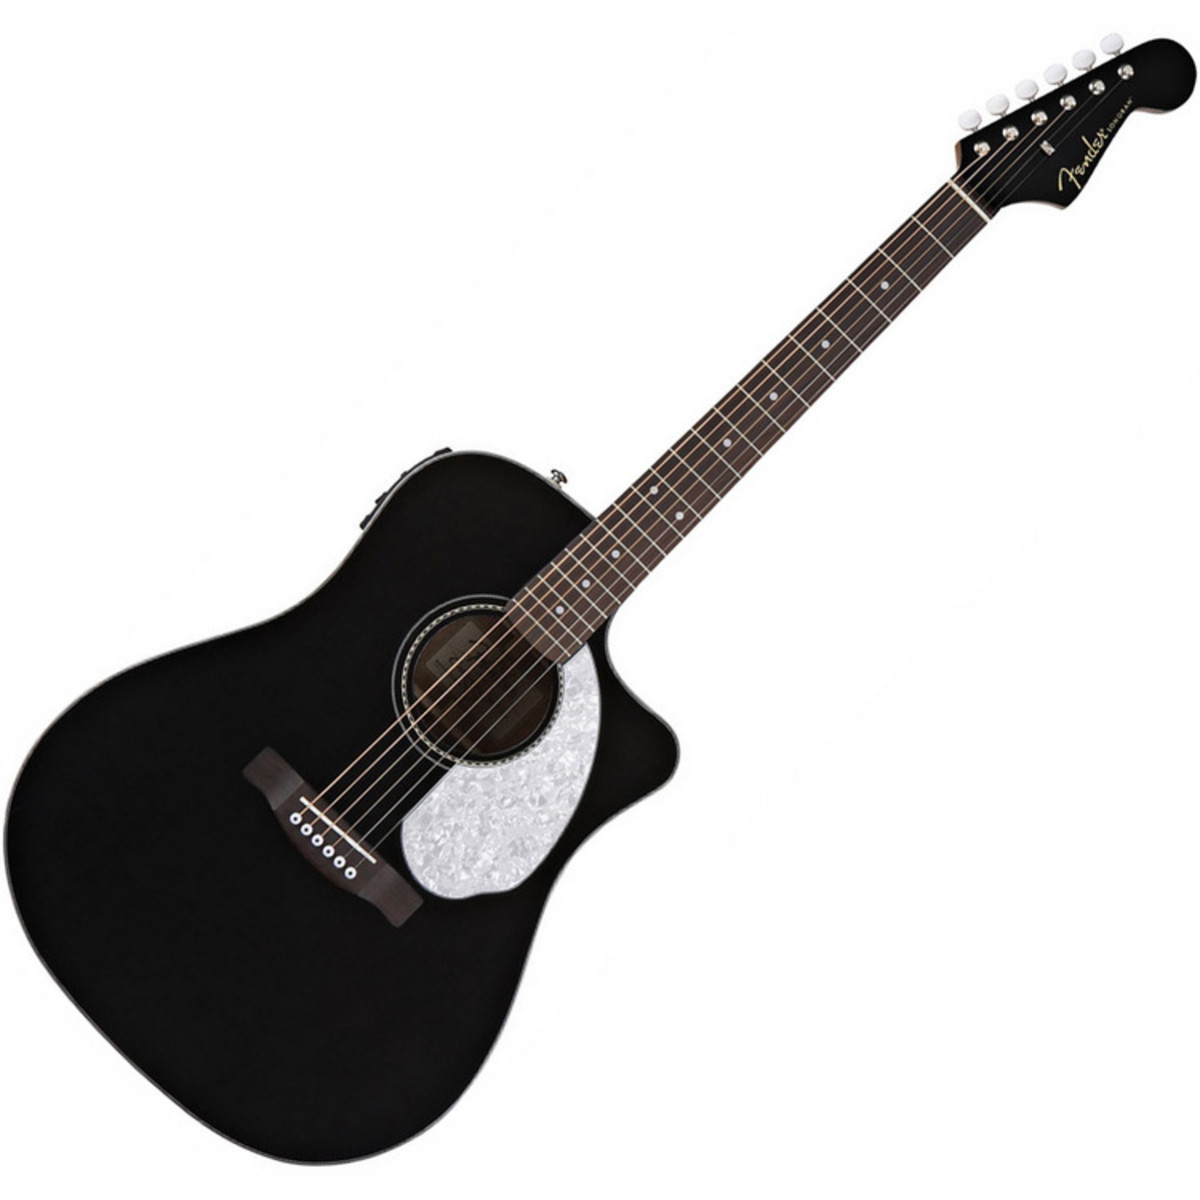 Fender Sonoran SCE V2 Electro Acoustic Guitar Black